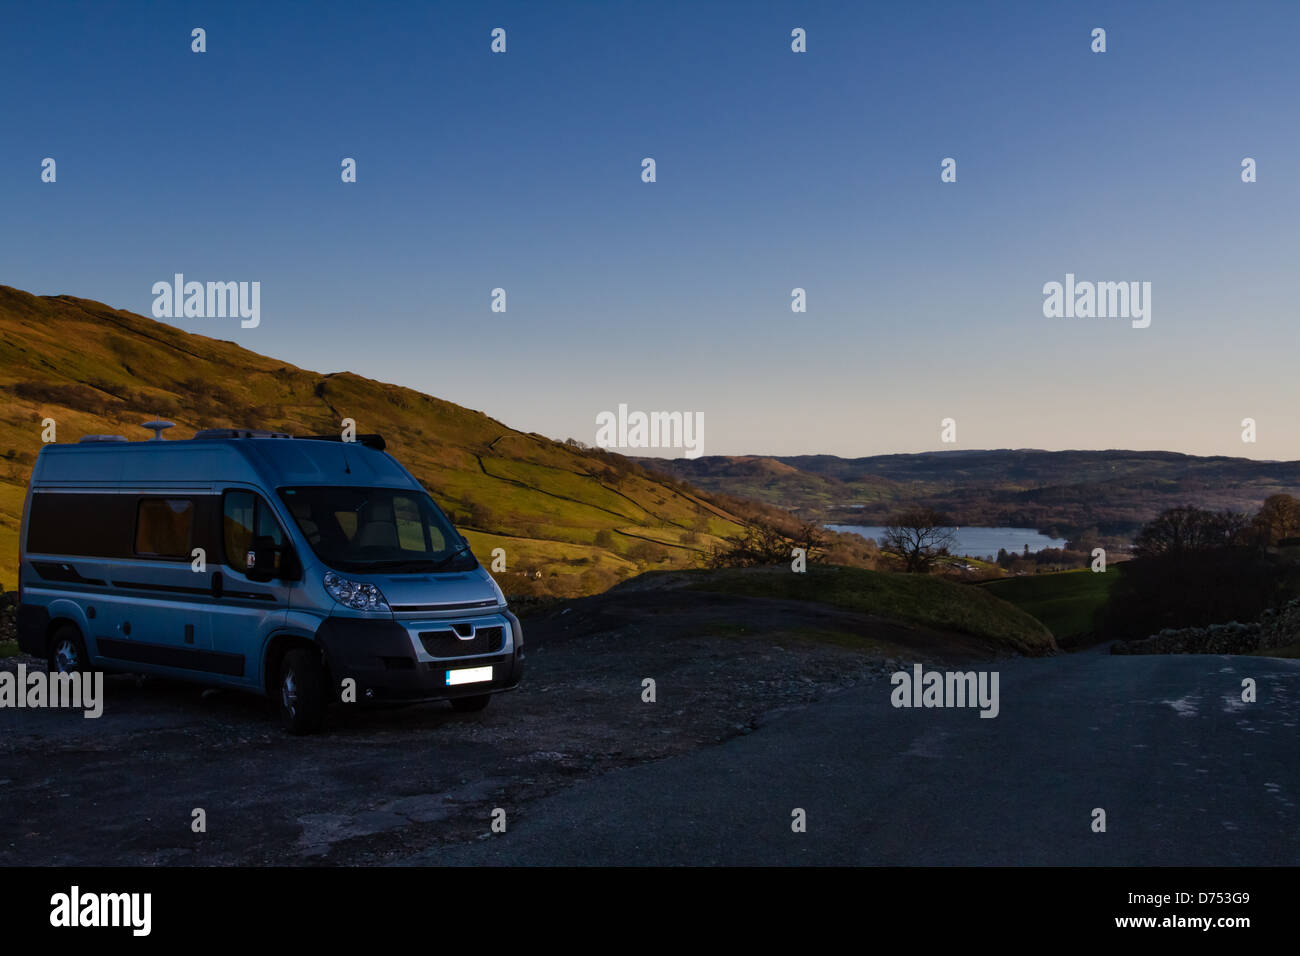 Autocruise Jazz campervan in the Lake District looking over Windermere, UK - Stock Image